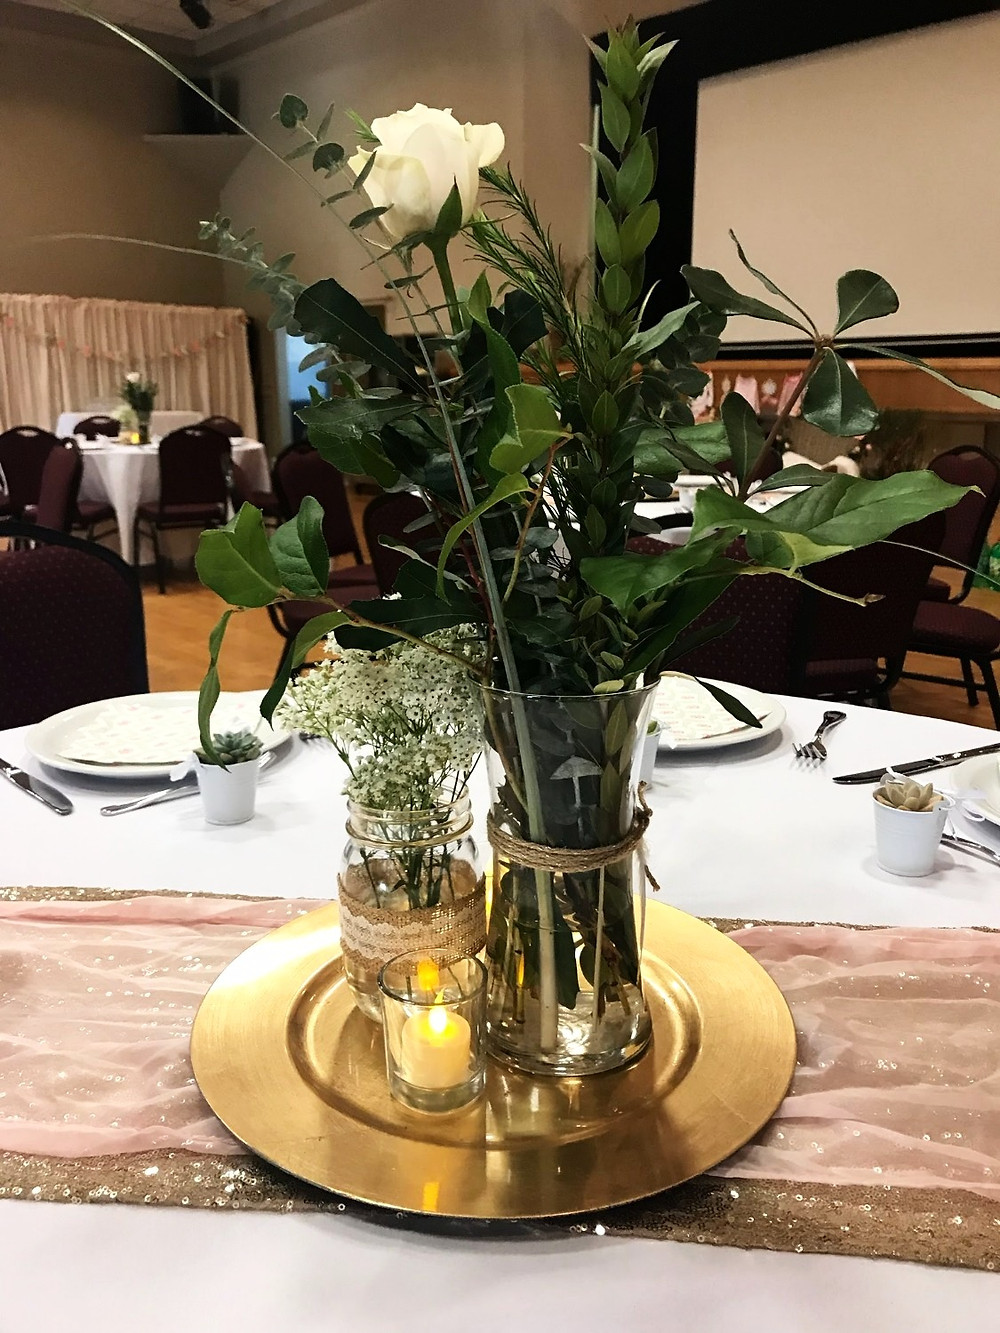 earthy center pieces with eucalyptus, white rose, mason jar, and gold chargers